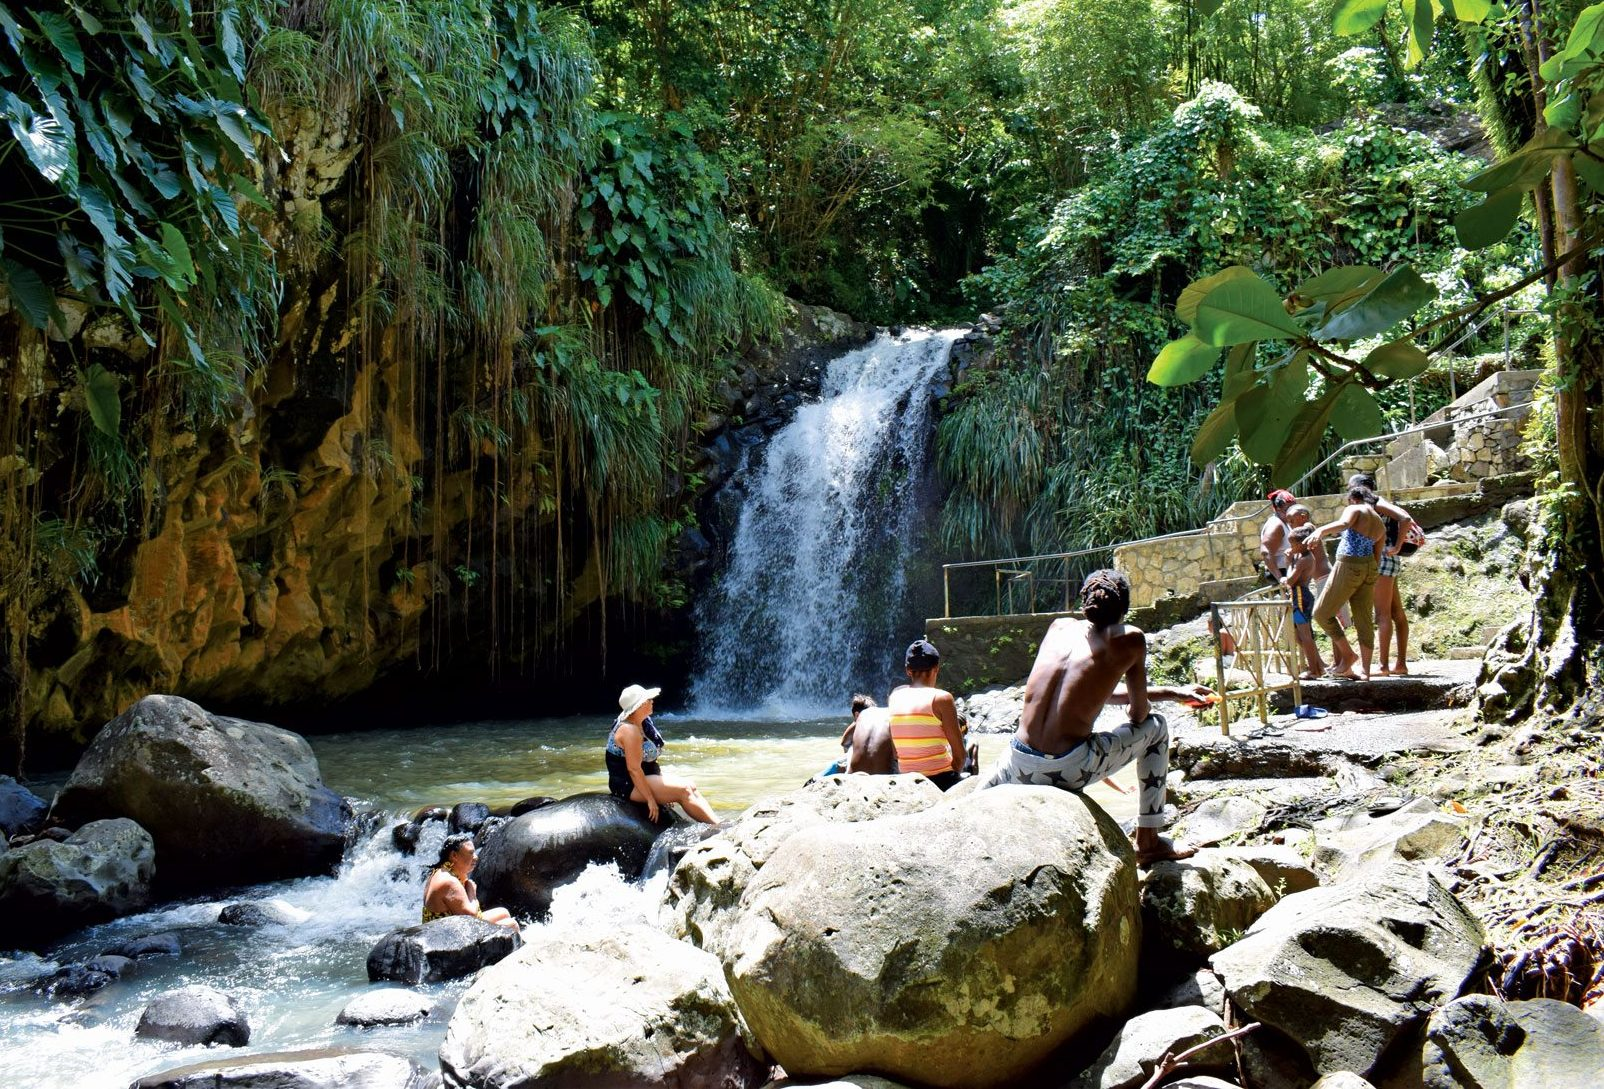 Annandale Falls – watch the locals jump from great heights or swim in the pool below. Photo by Rosie Burr